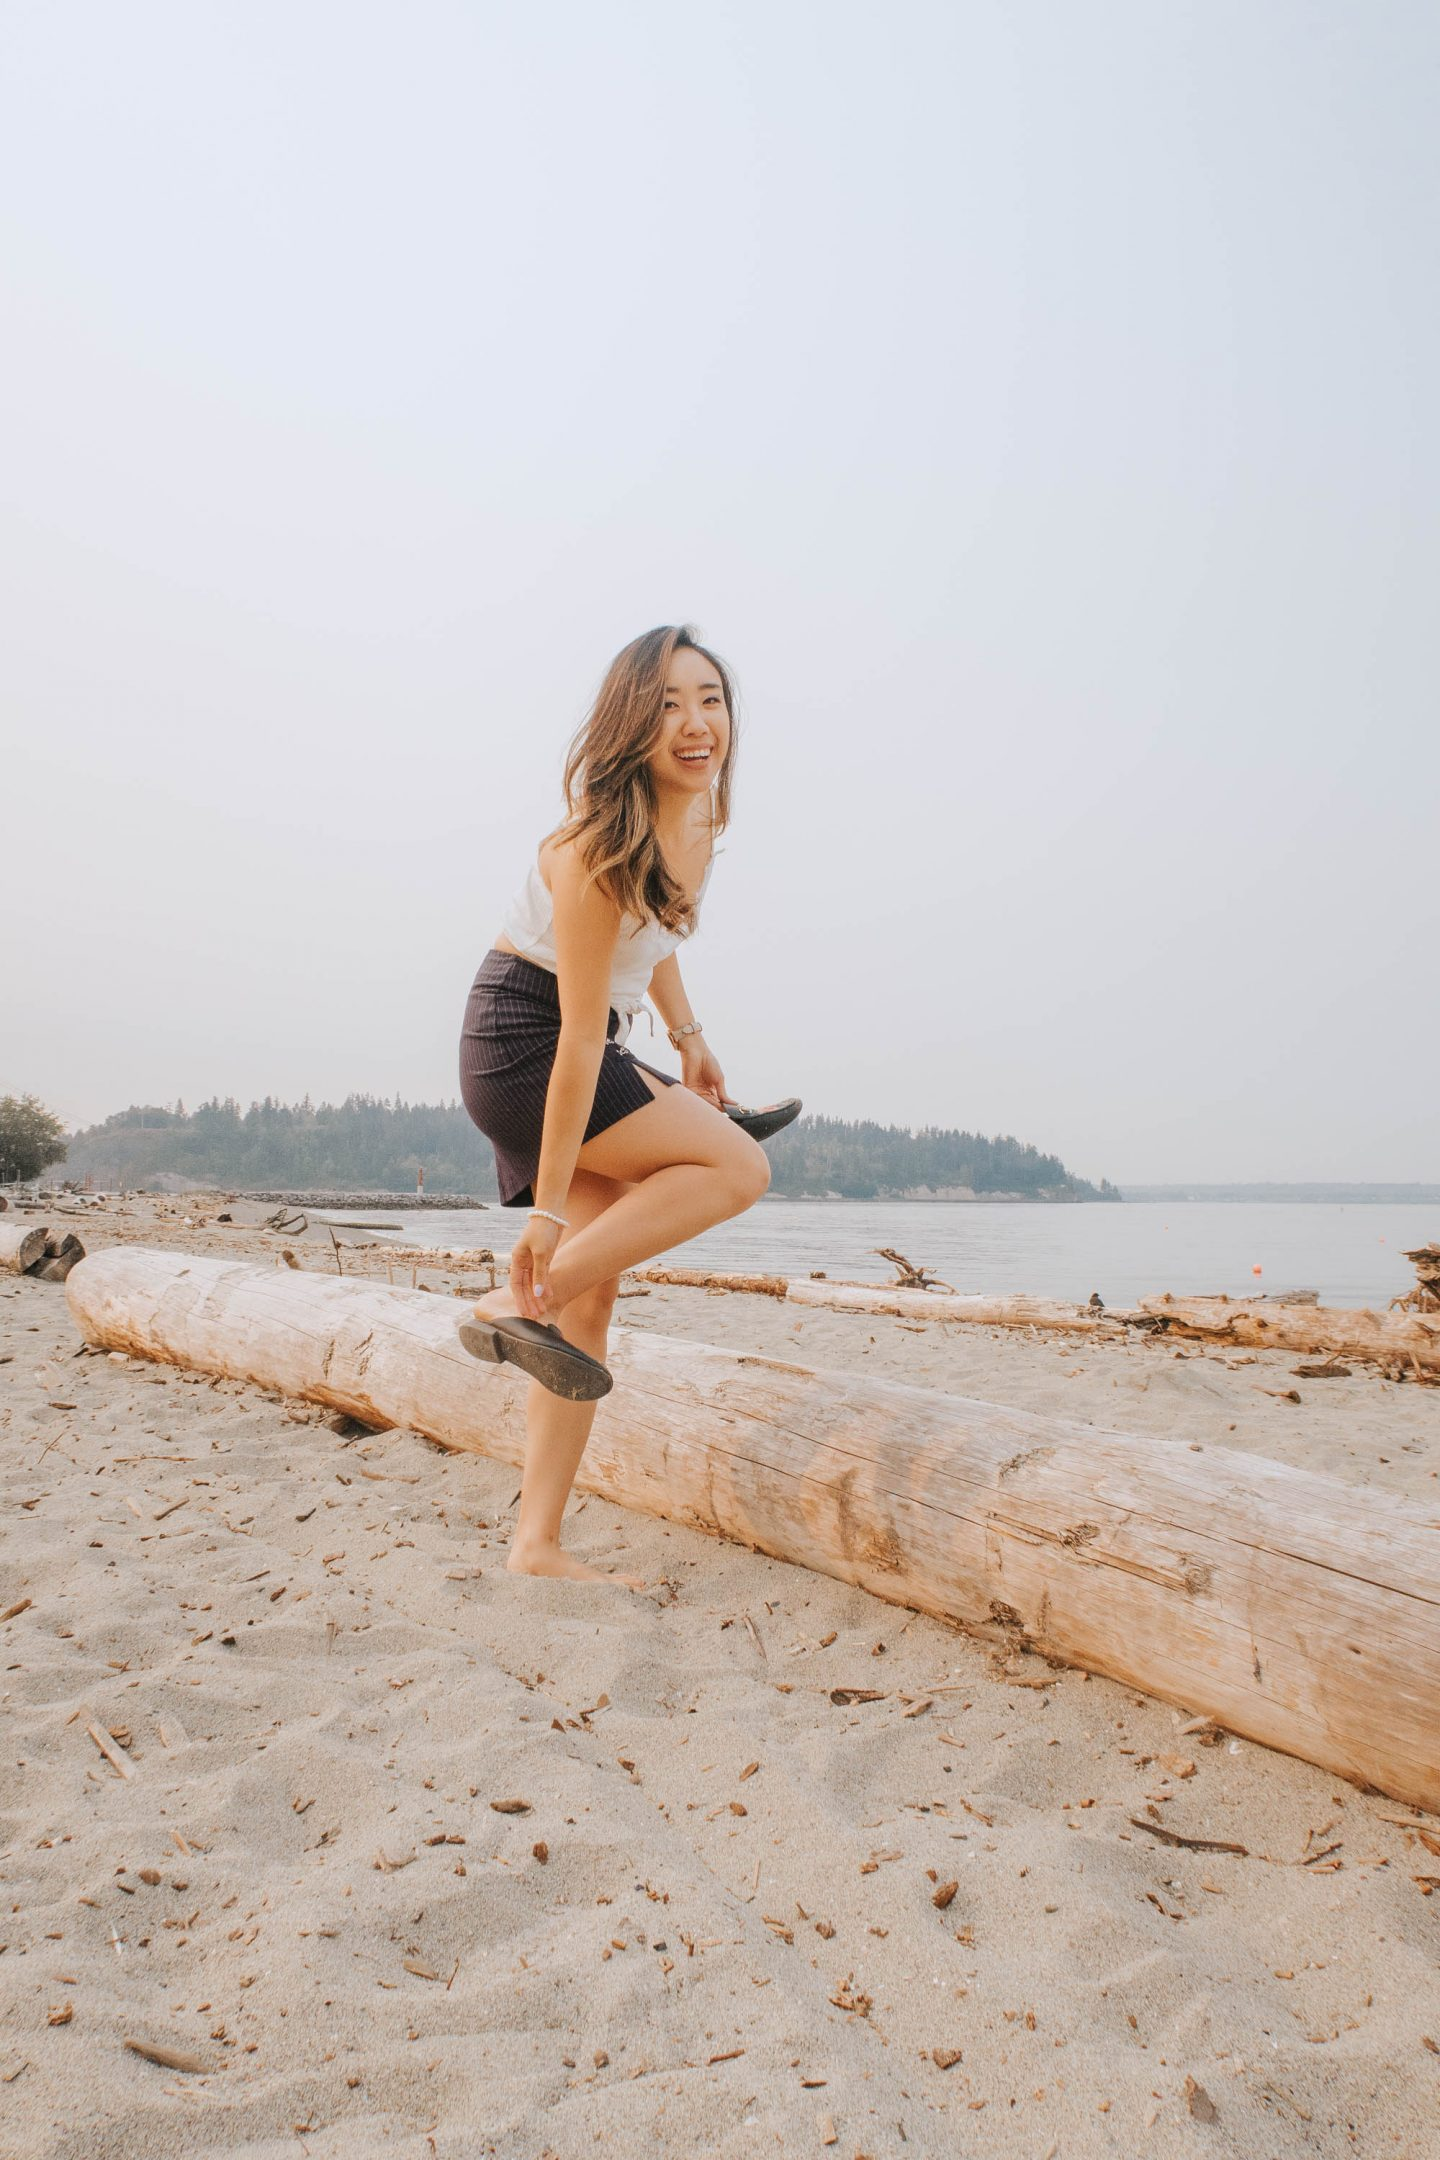 Taking off my shoes to run across one of Vancouver BC beaches that reminds me of Hawaii